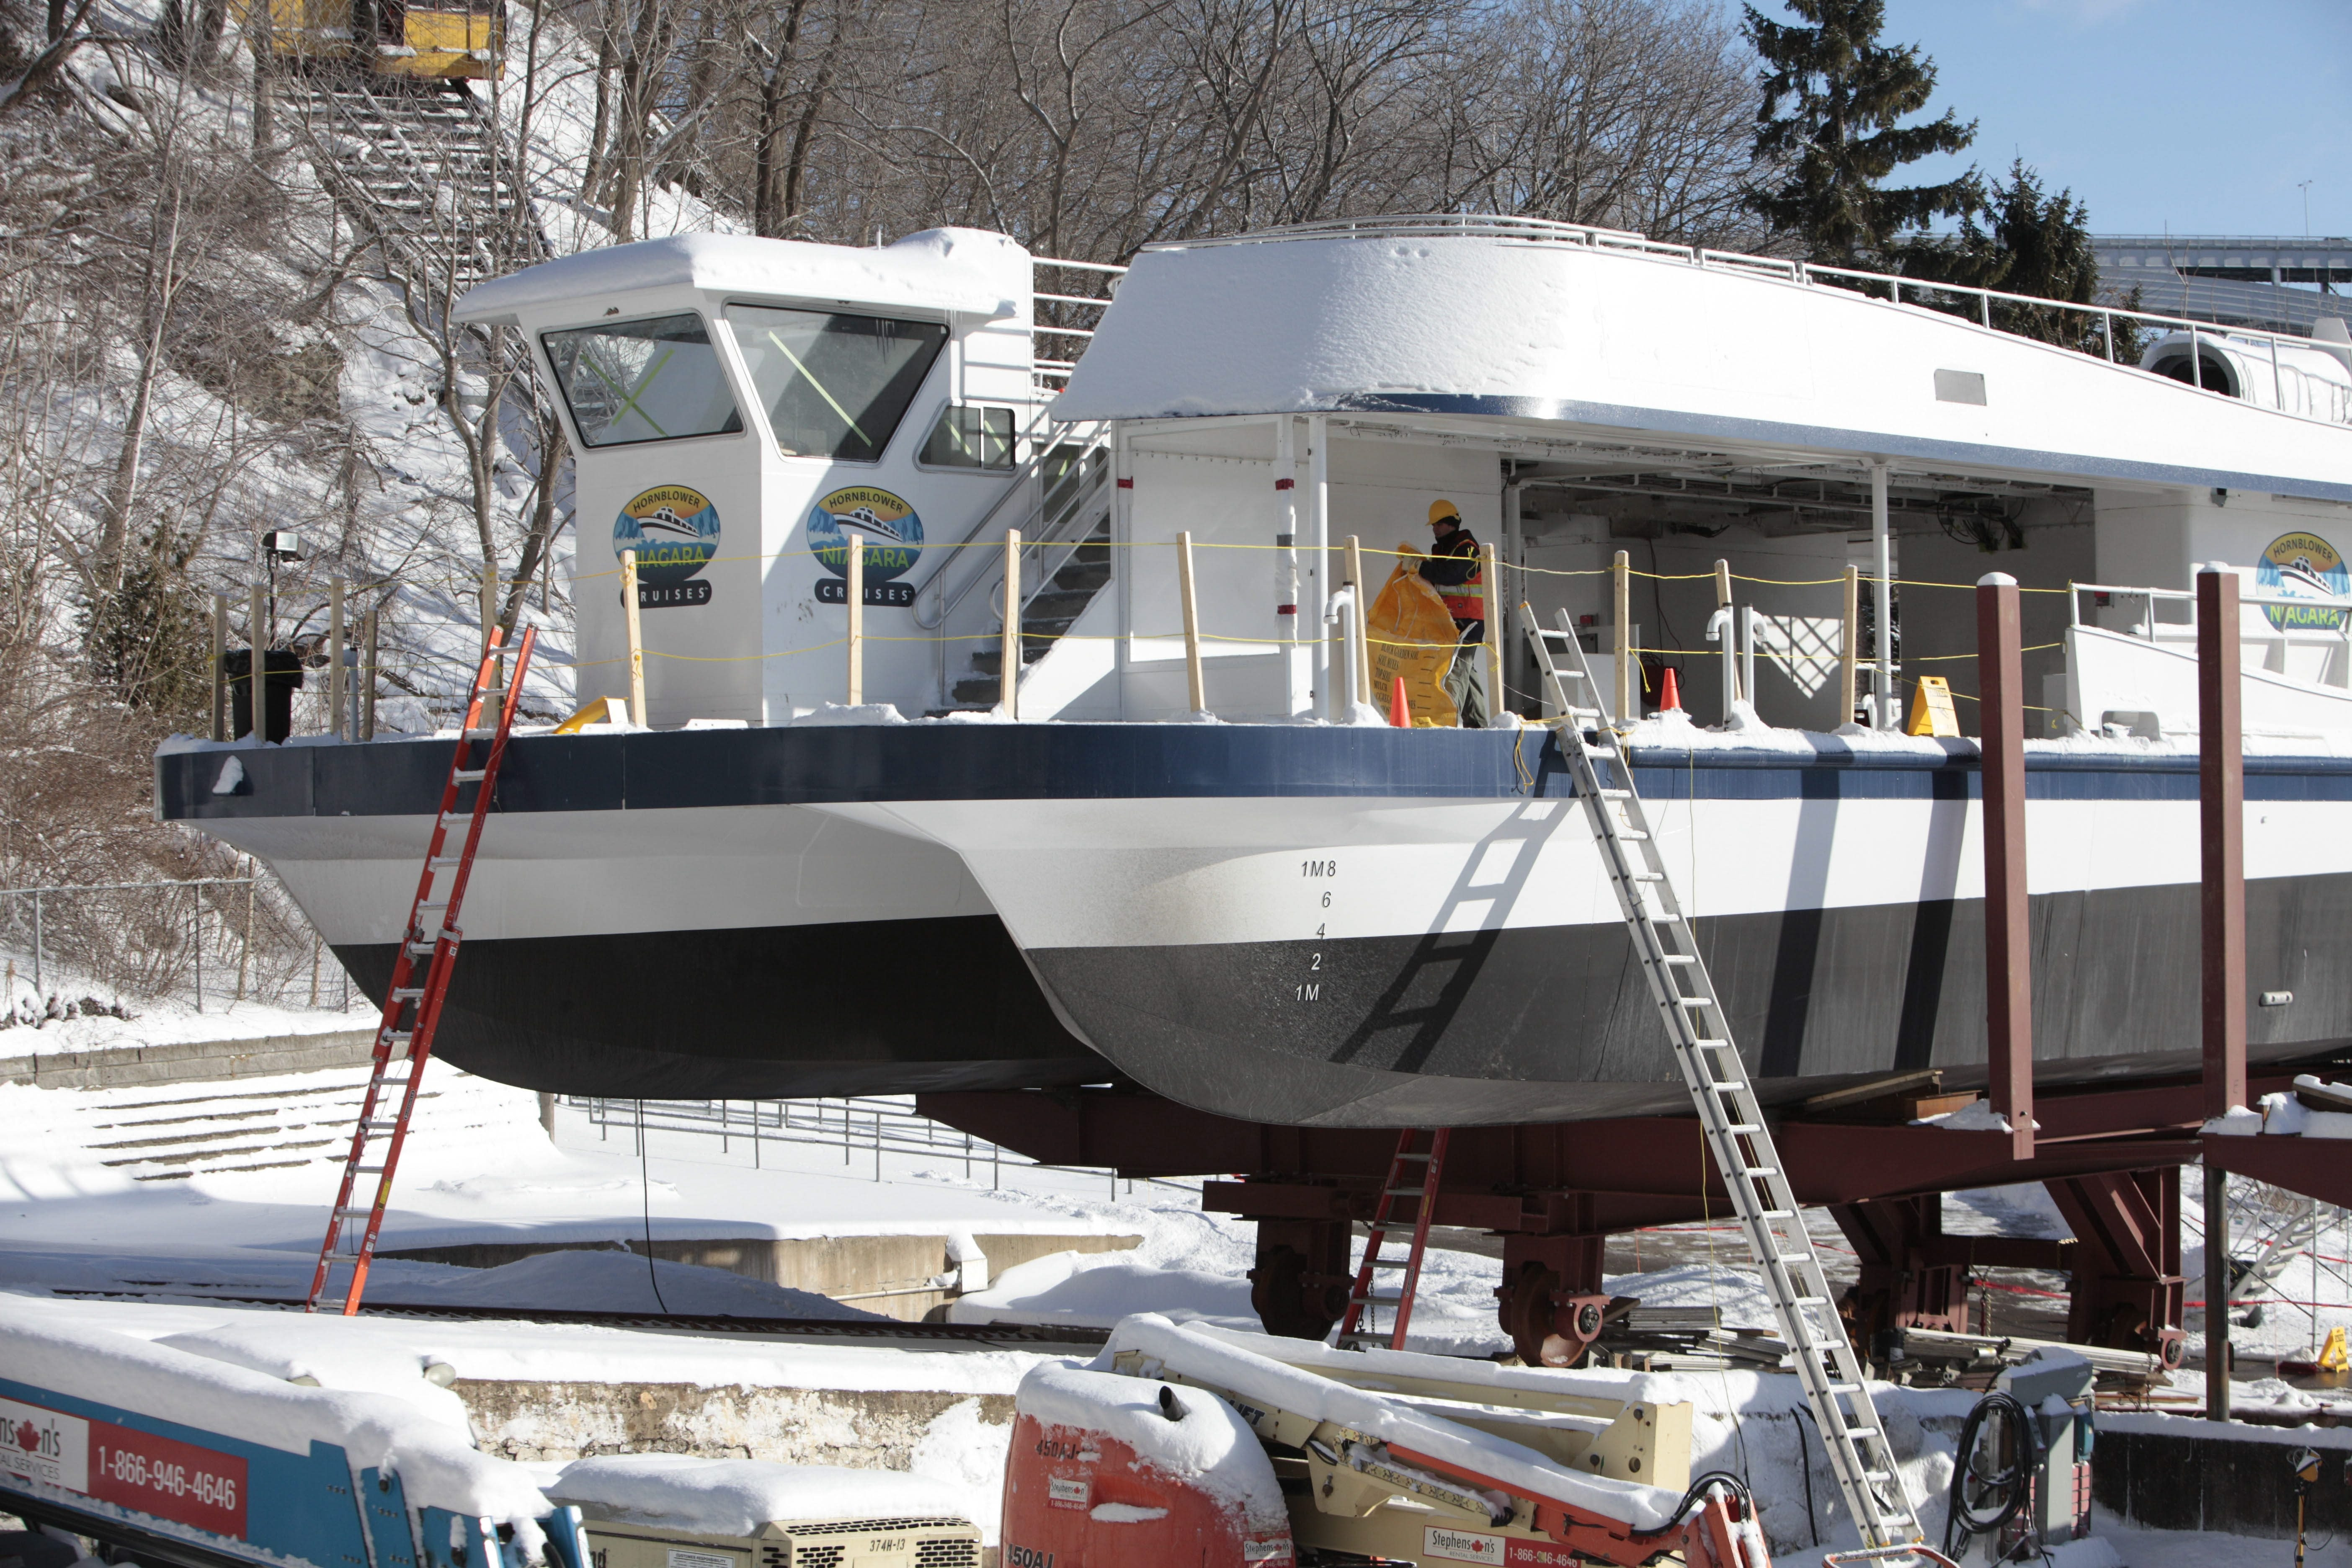 The first catamaran is nearly assembled at Hornblower Niagara Cruises in Niagara Falls, Ont., Monday, Jan. 27, 2014.   Parts of the second catamaran were supposed to arrive today but were delayed due to weather.  Each catamaran weighs 120 tons and costs about $5 million.  (Derek Gee/Buffalo News)